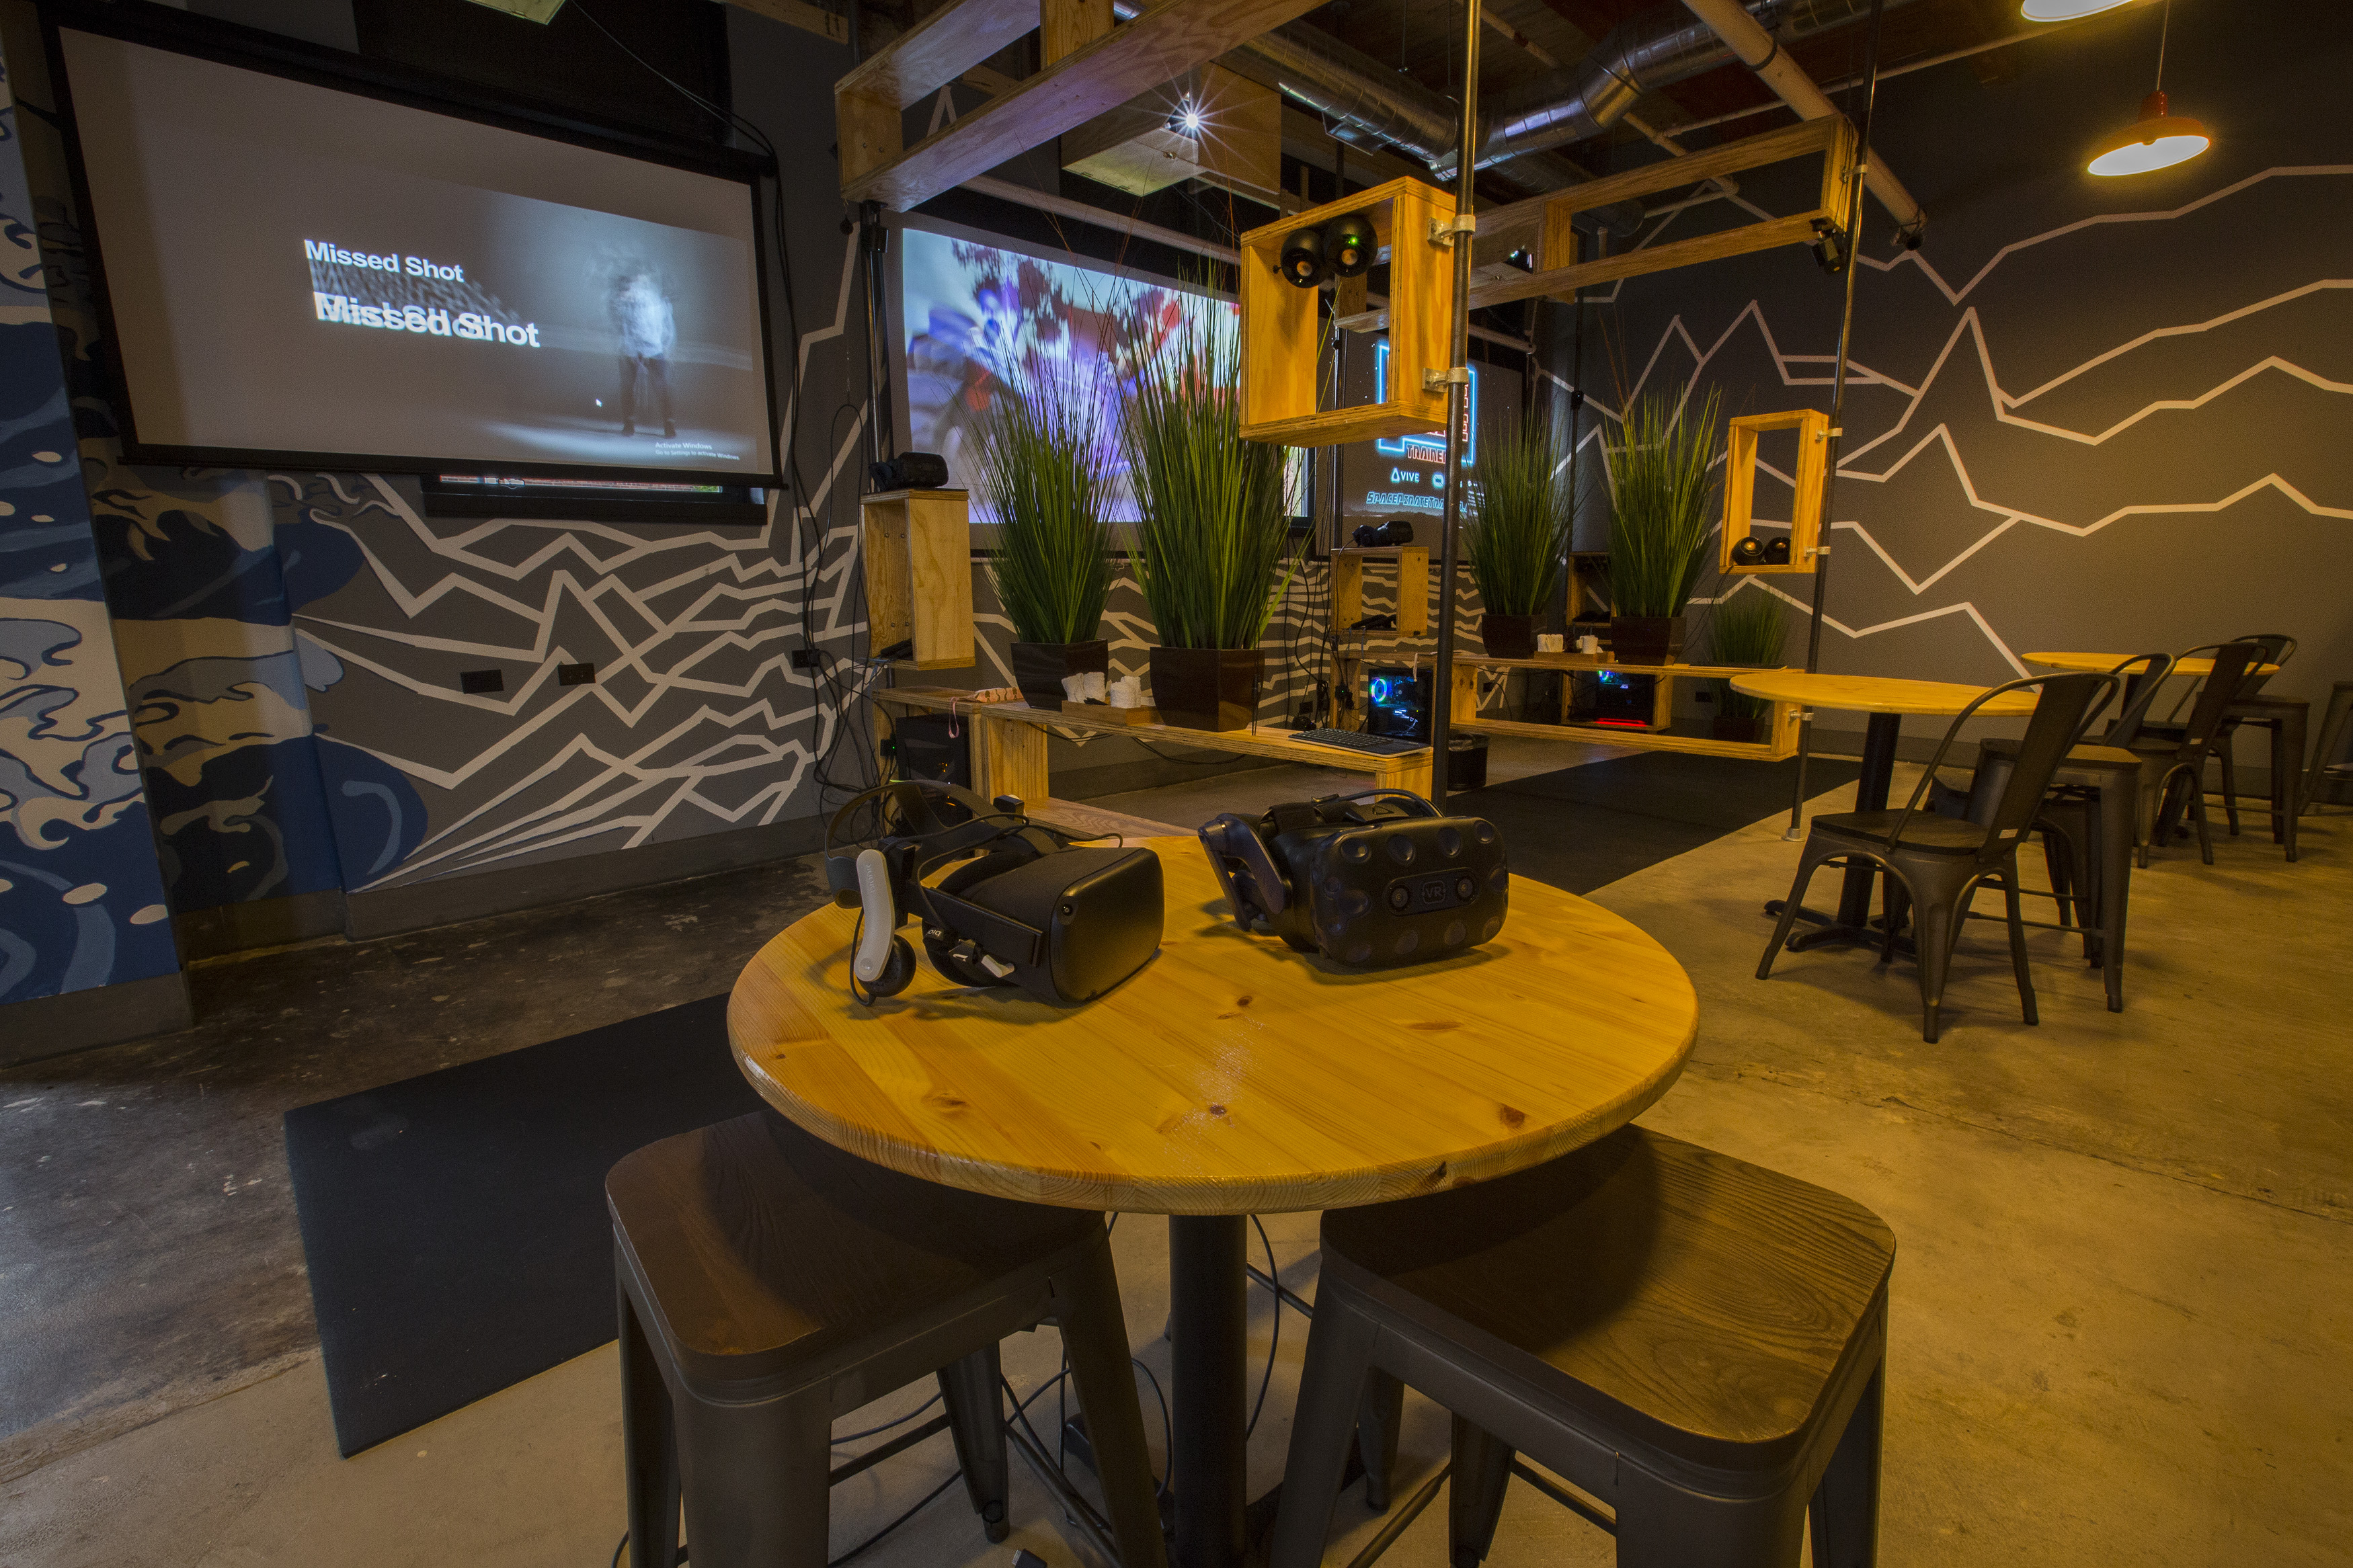 A VR bar with a round table and two headsets and projection screens on the background.